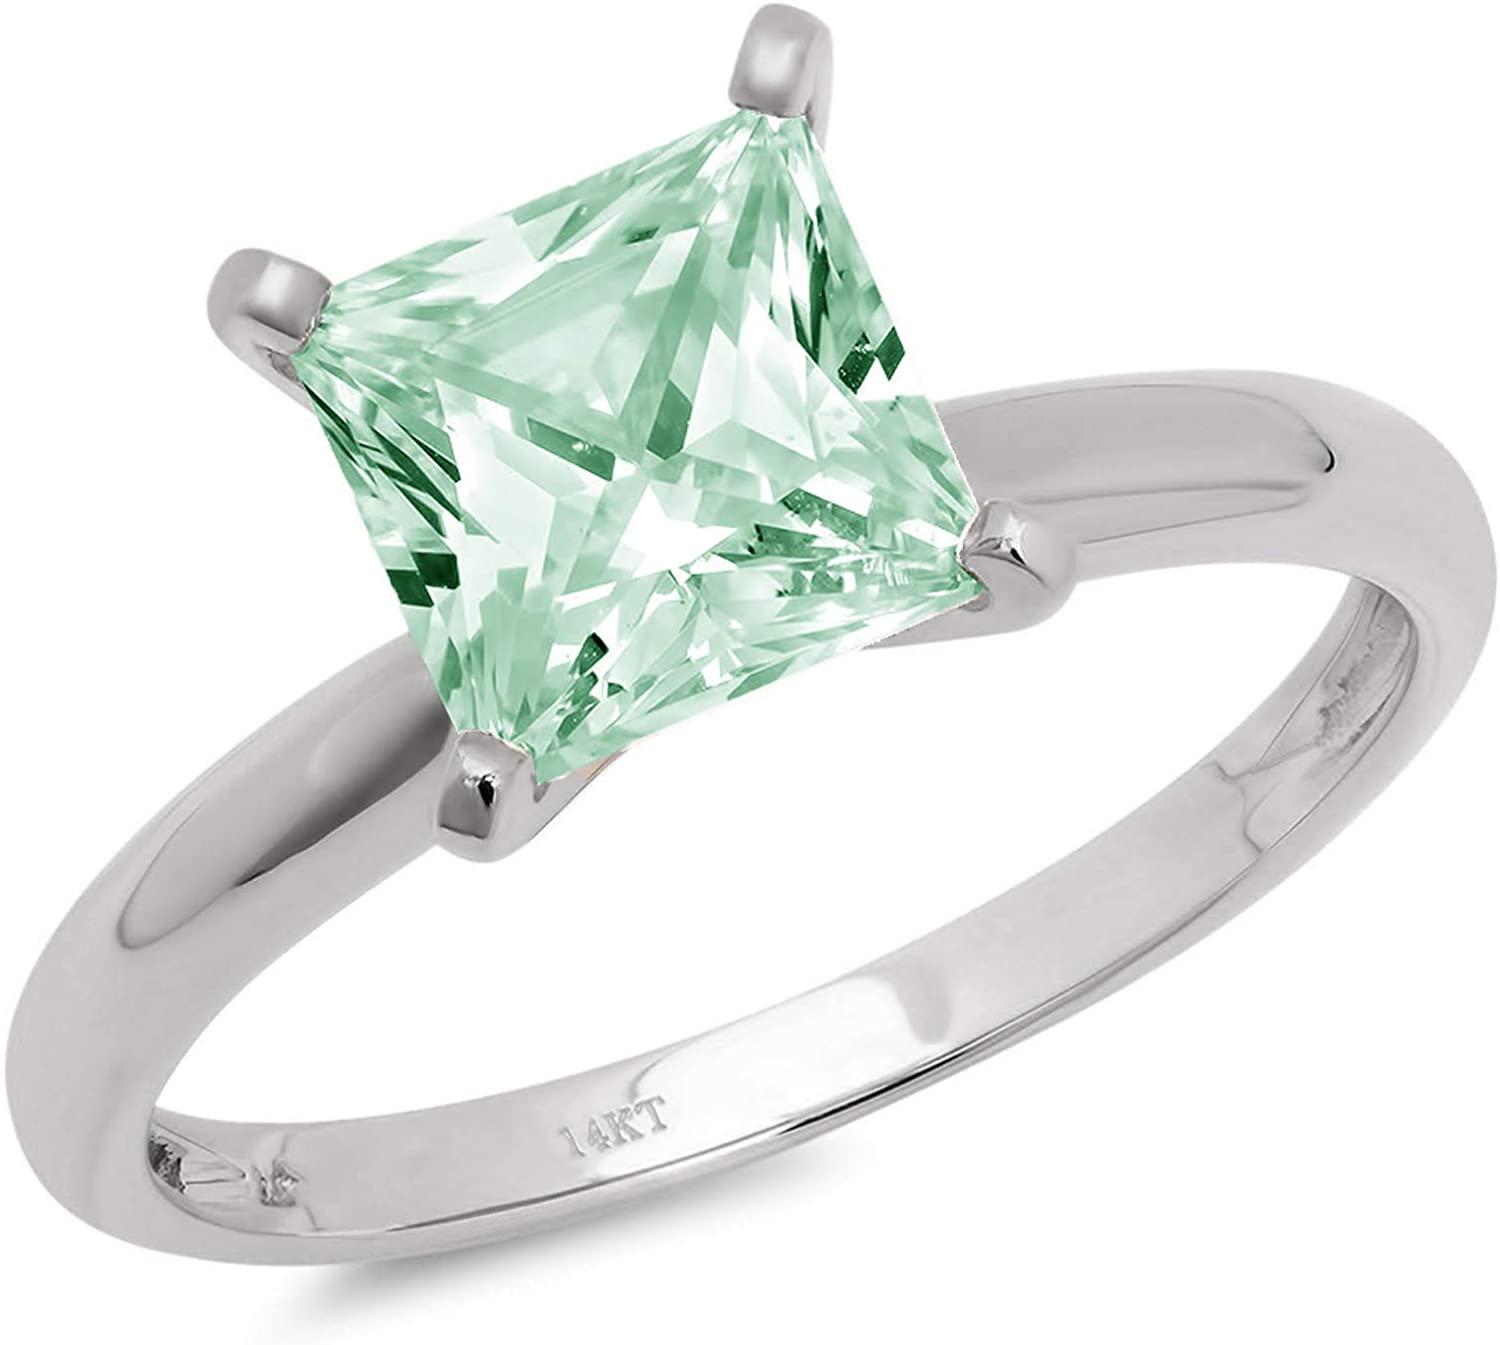 2.9ct Brilliant Princess Cut Solitaire Light Sea Green Simulated Diamond Cubic Zirconia Ideal VVS1 D 4-Prong Engagement Wedding Bridal Promise Anniversary Ring Solid 14k White Gold for Women